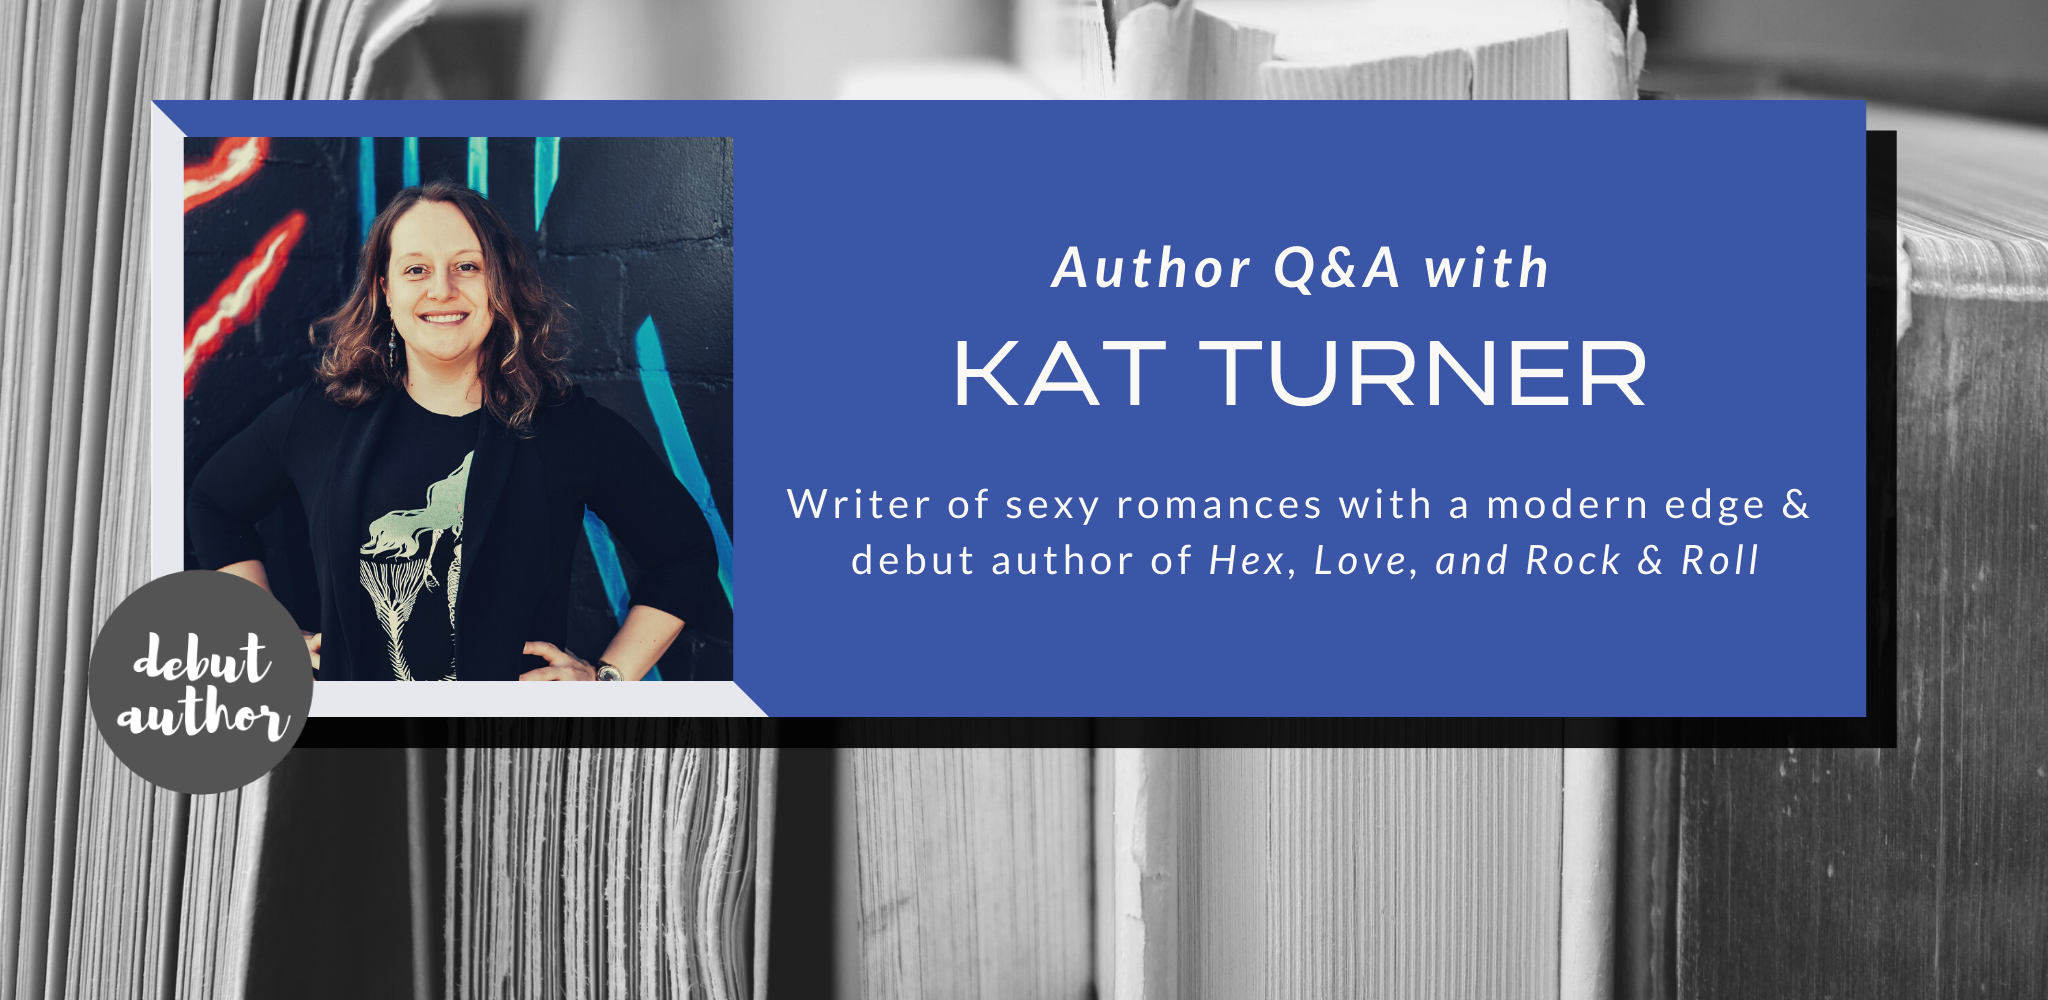 Q&A with Kat Turner